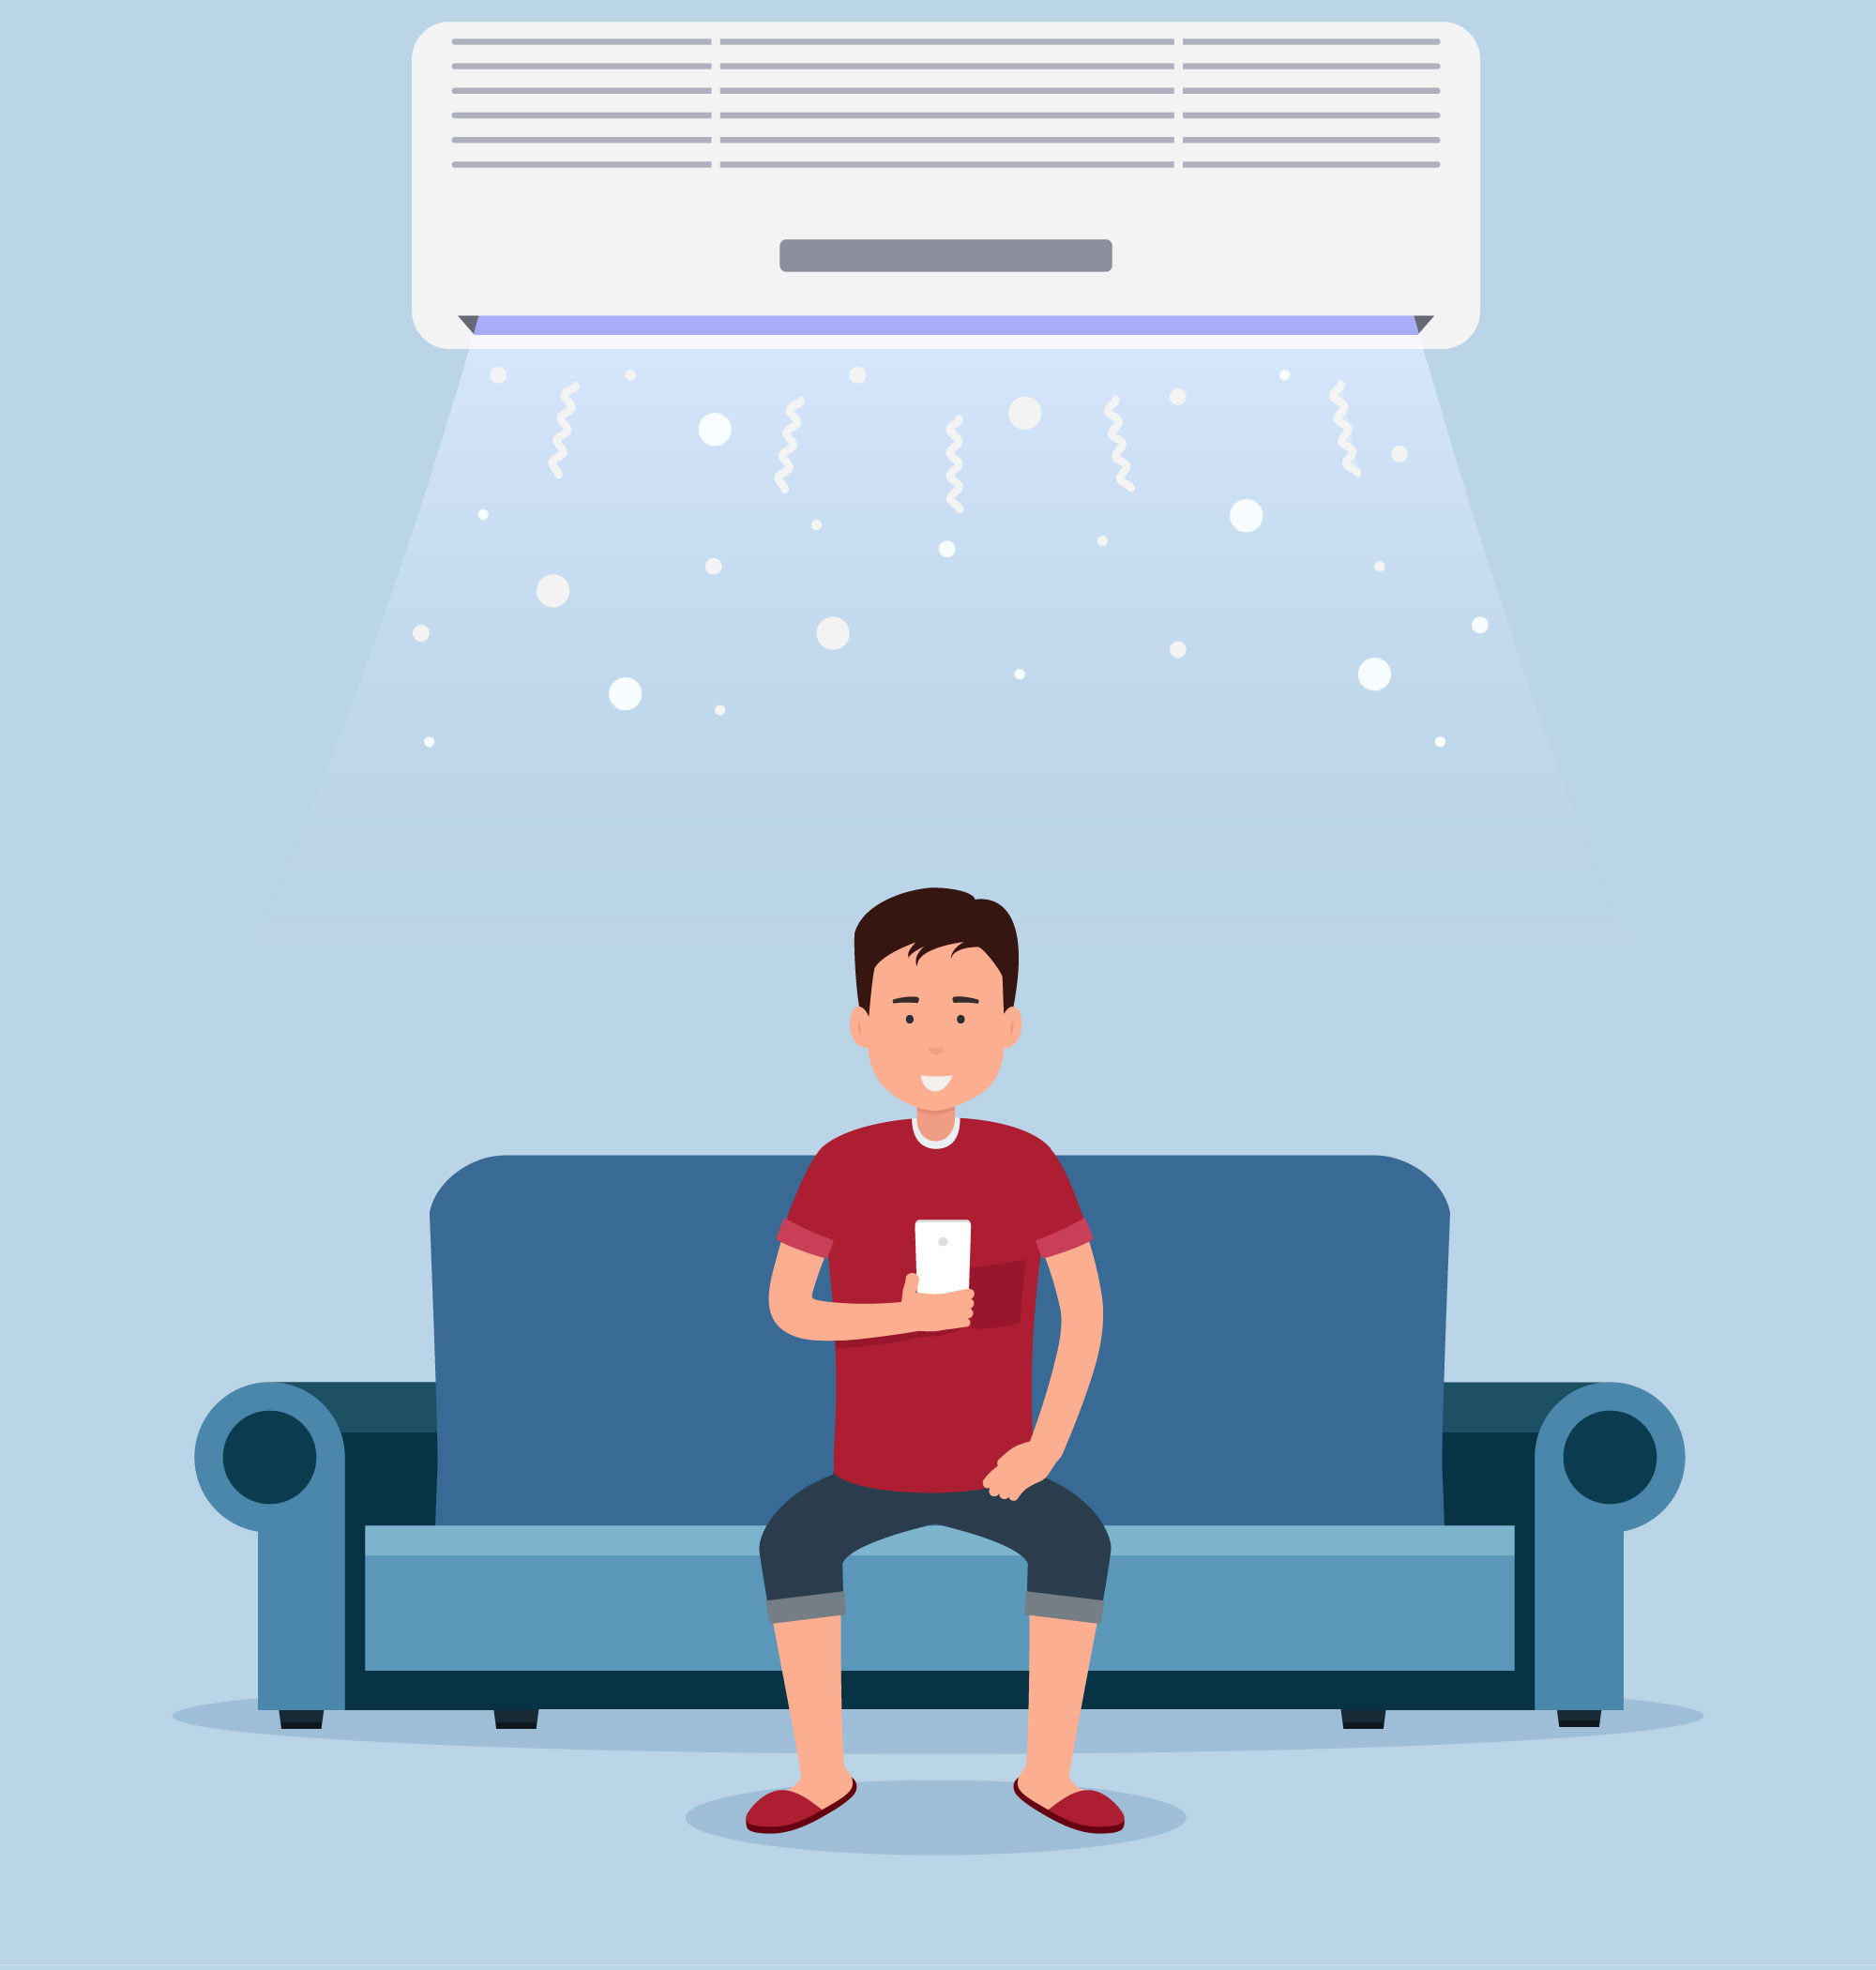 llustration of smiling man in red shirt sitting on couch under ductless cooling unit